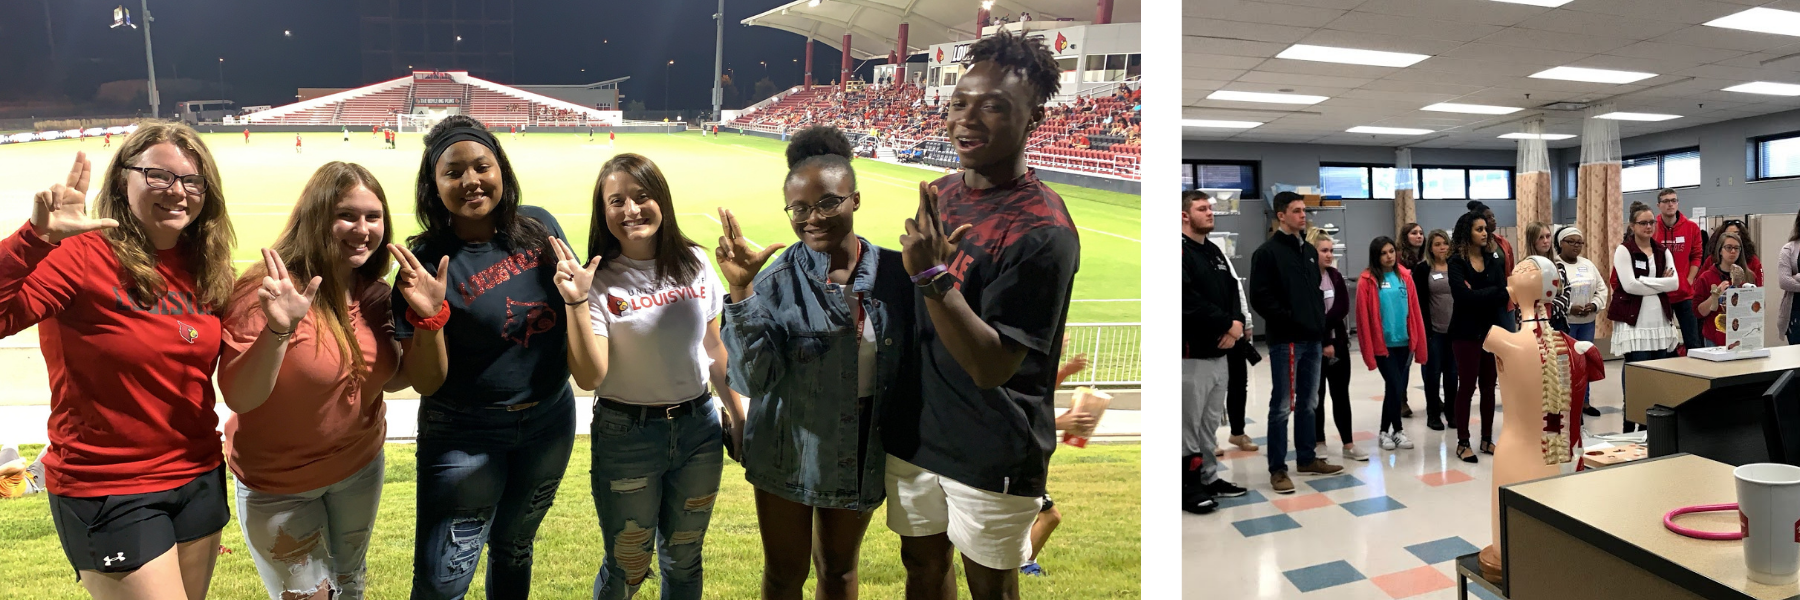 students smiling at a soccer game and students learning about anatomy in a health sciences classroom